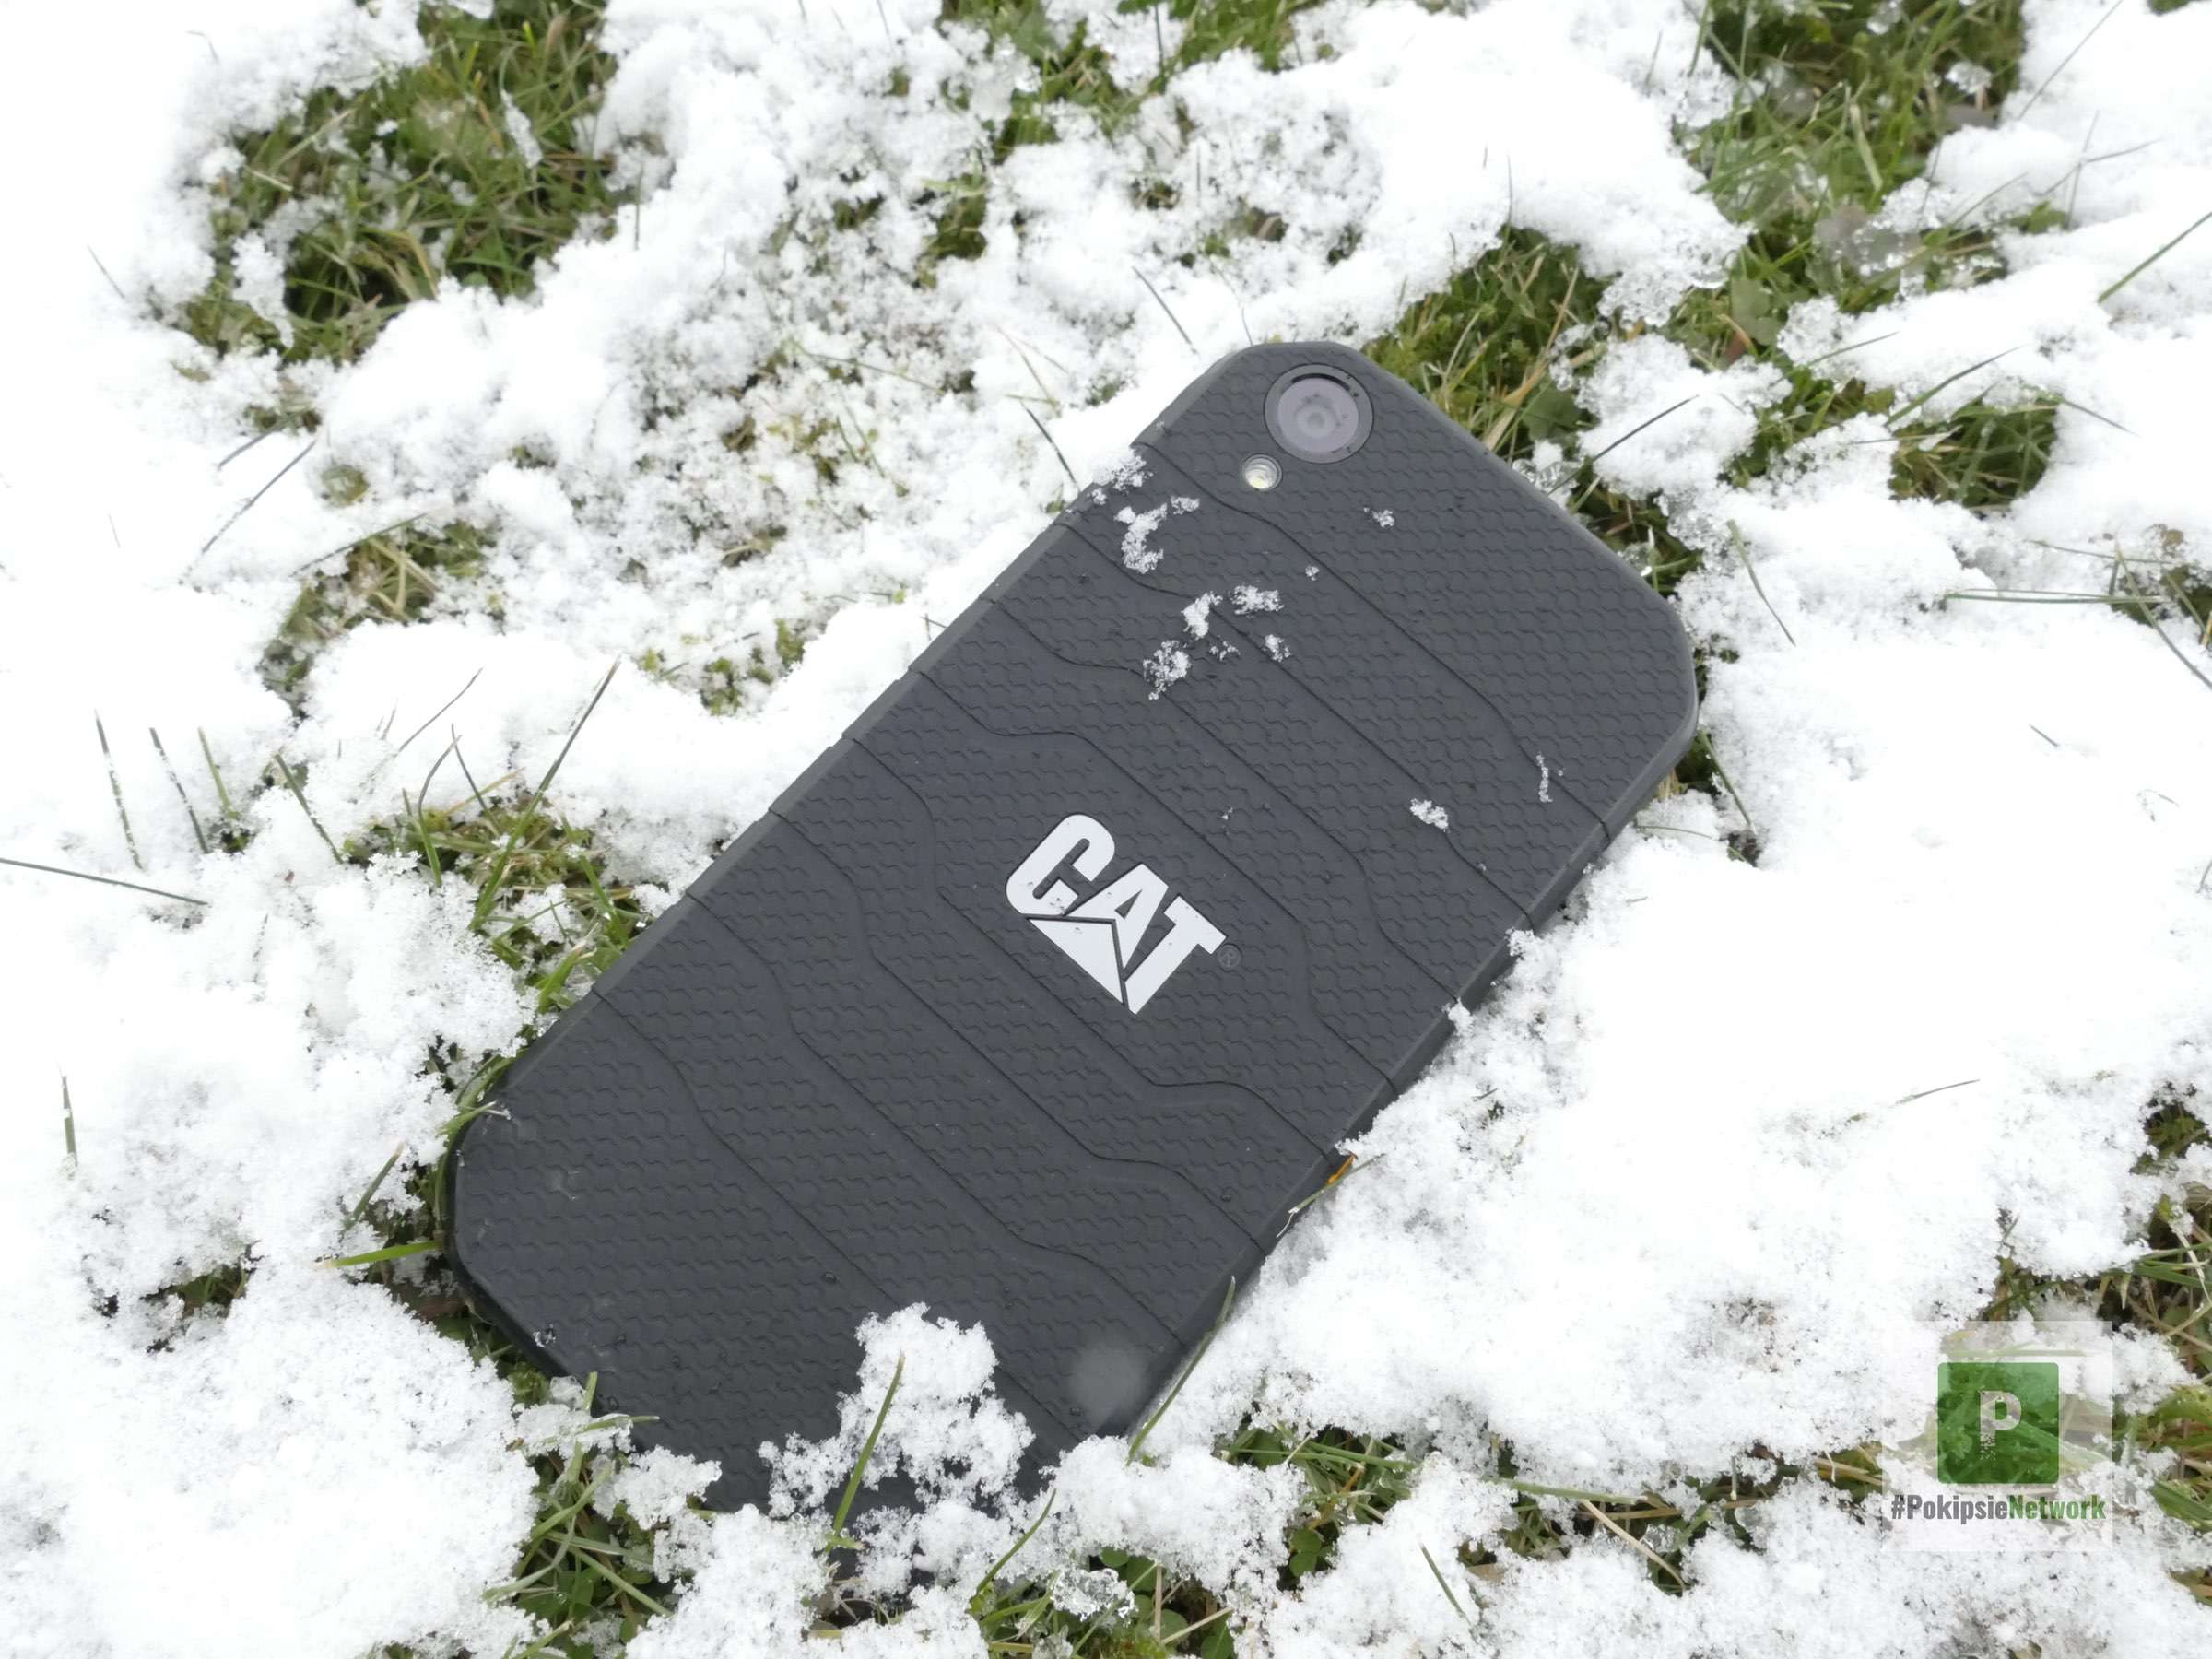 CAT S41 Outdoor Smartphone